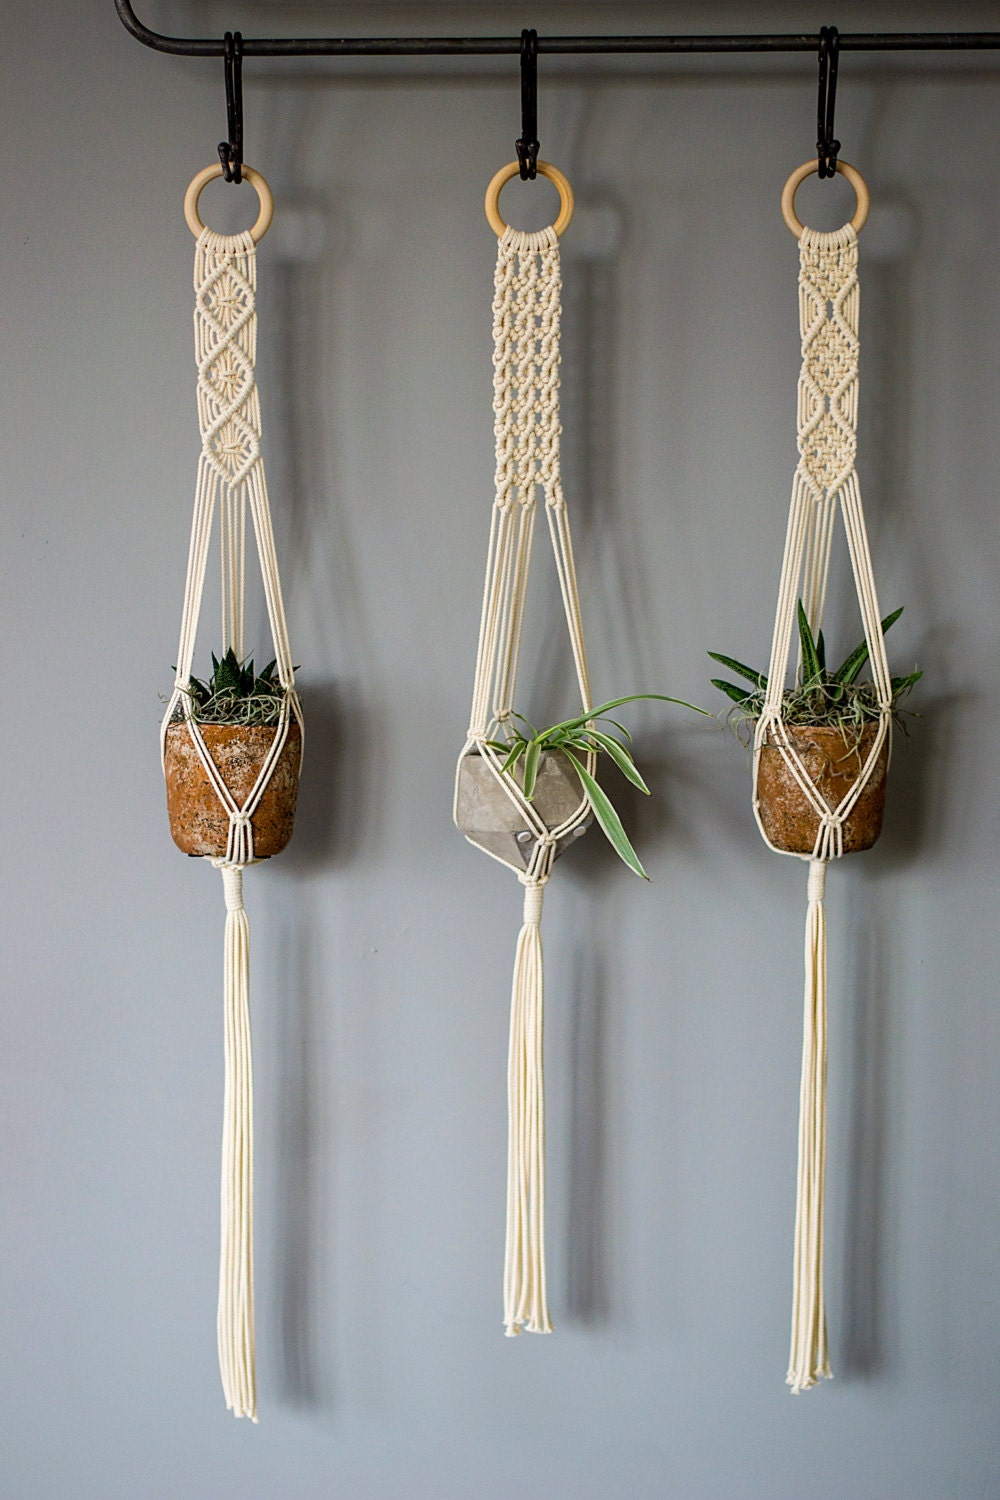 Macrame Plant Hangers 38 Inch 1 8 Inch Braided Cotton Cord